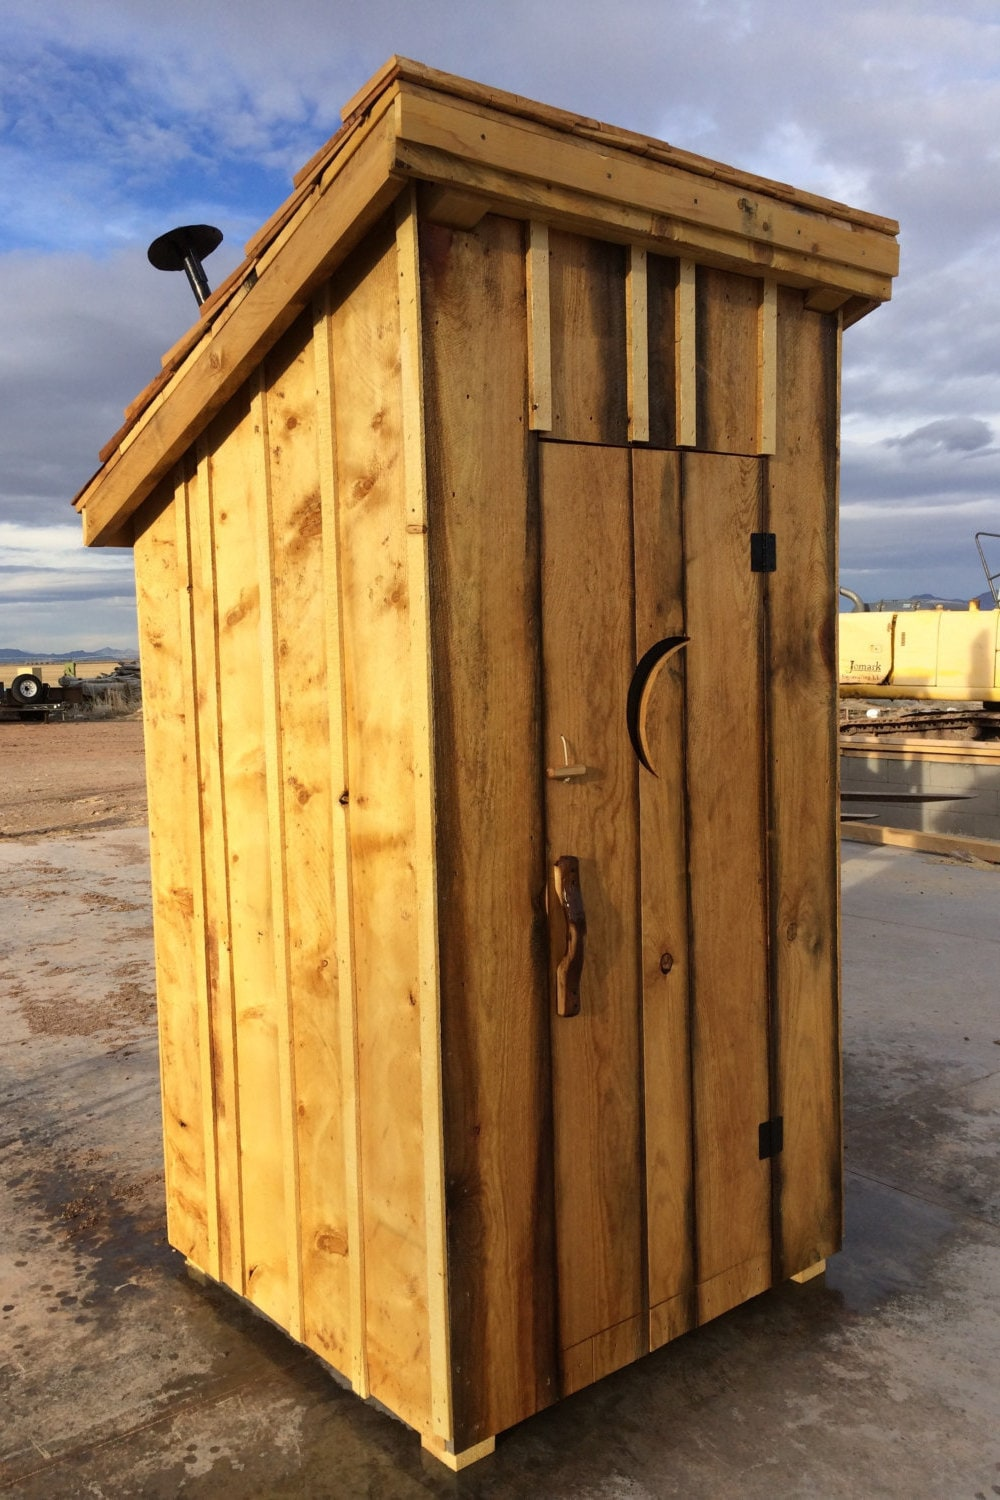 4 feet x 4 feet x 8 feet tall Outhouse Shed | Etsy